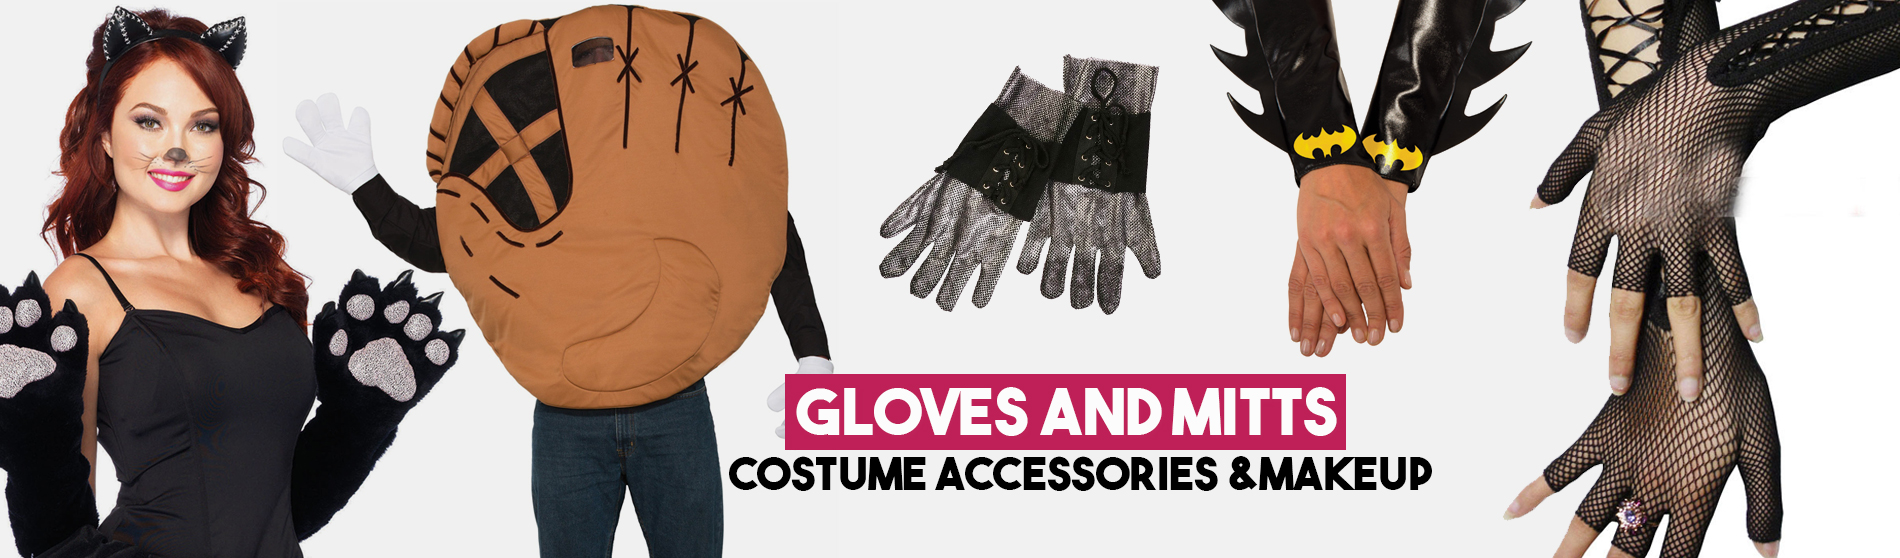 Gloves-and-Mitts-Costume